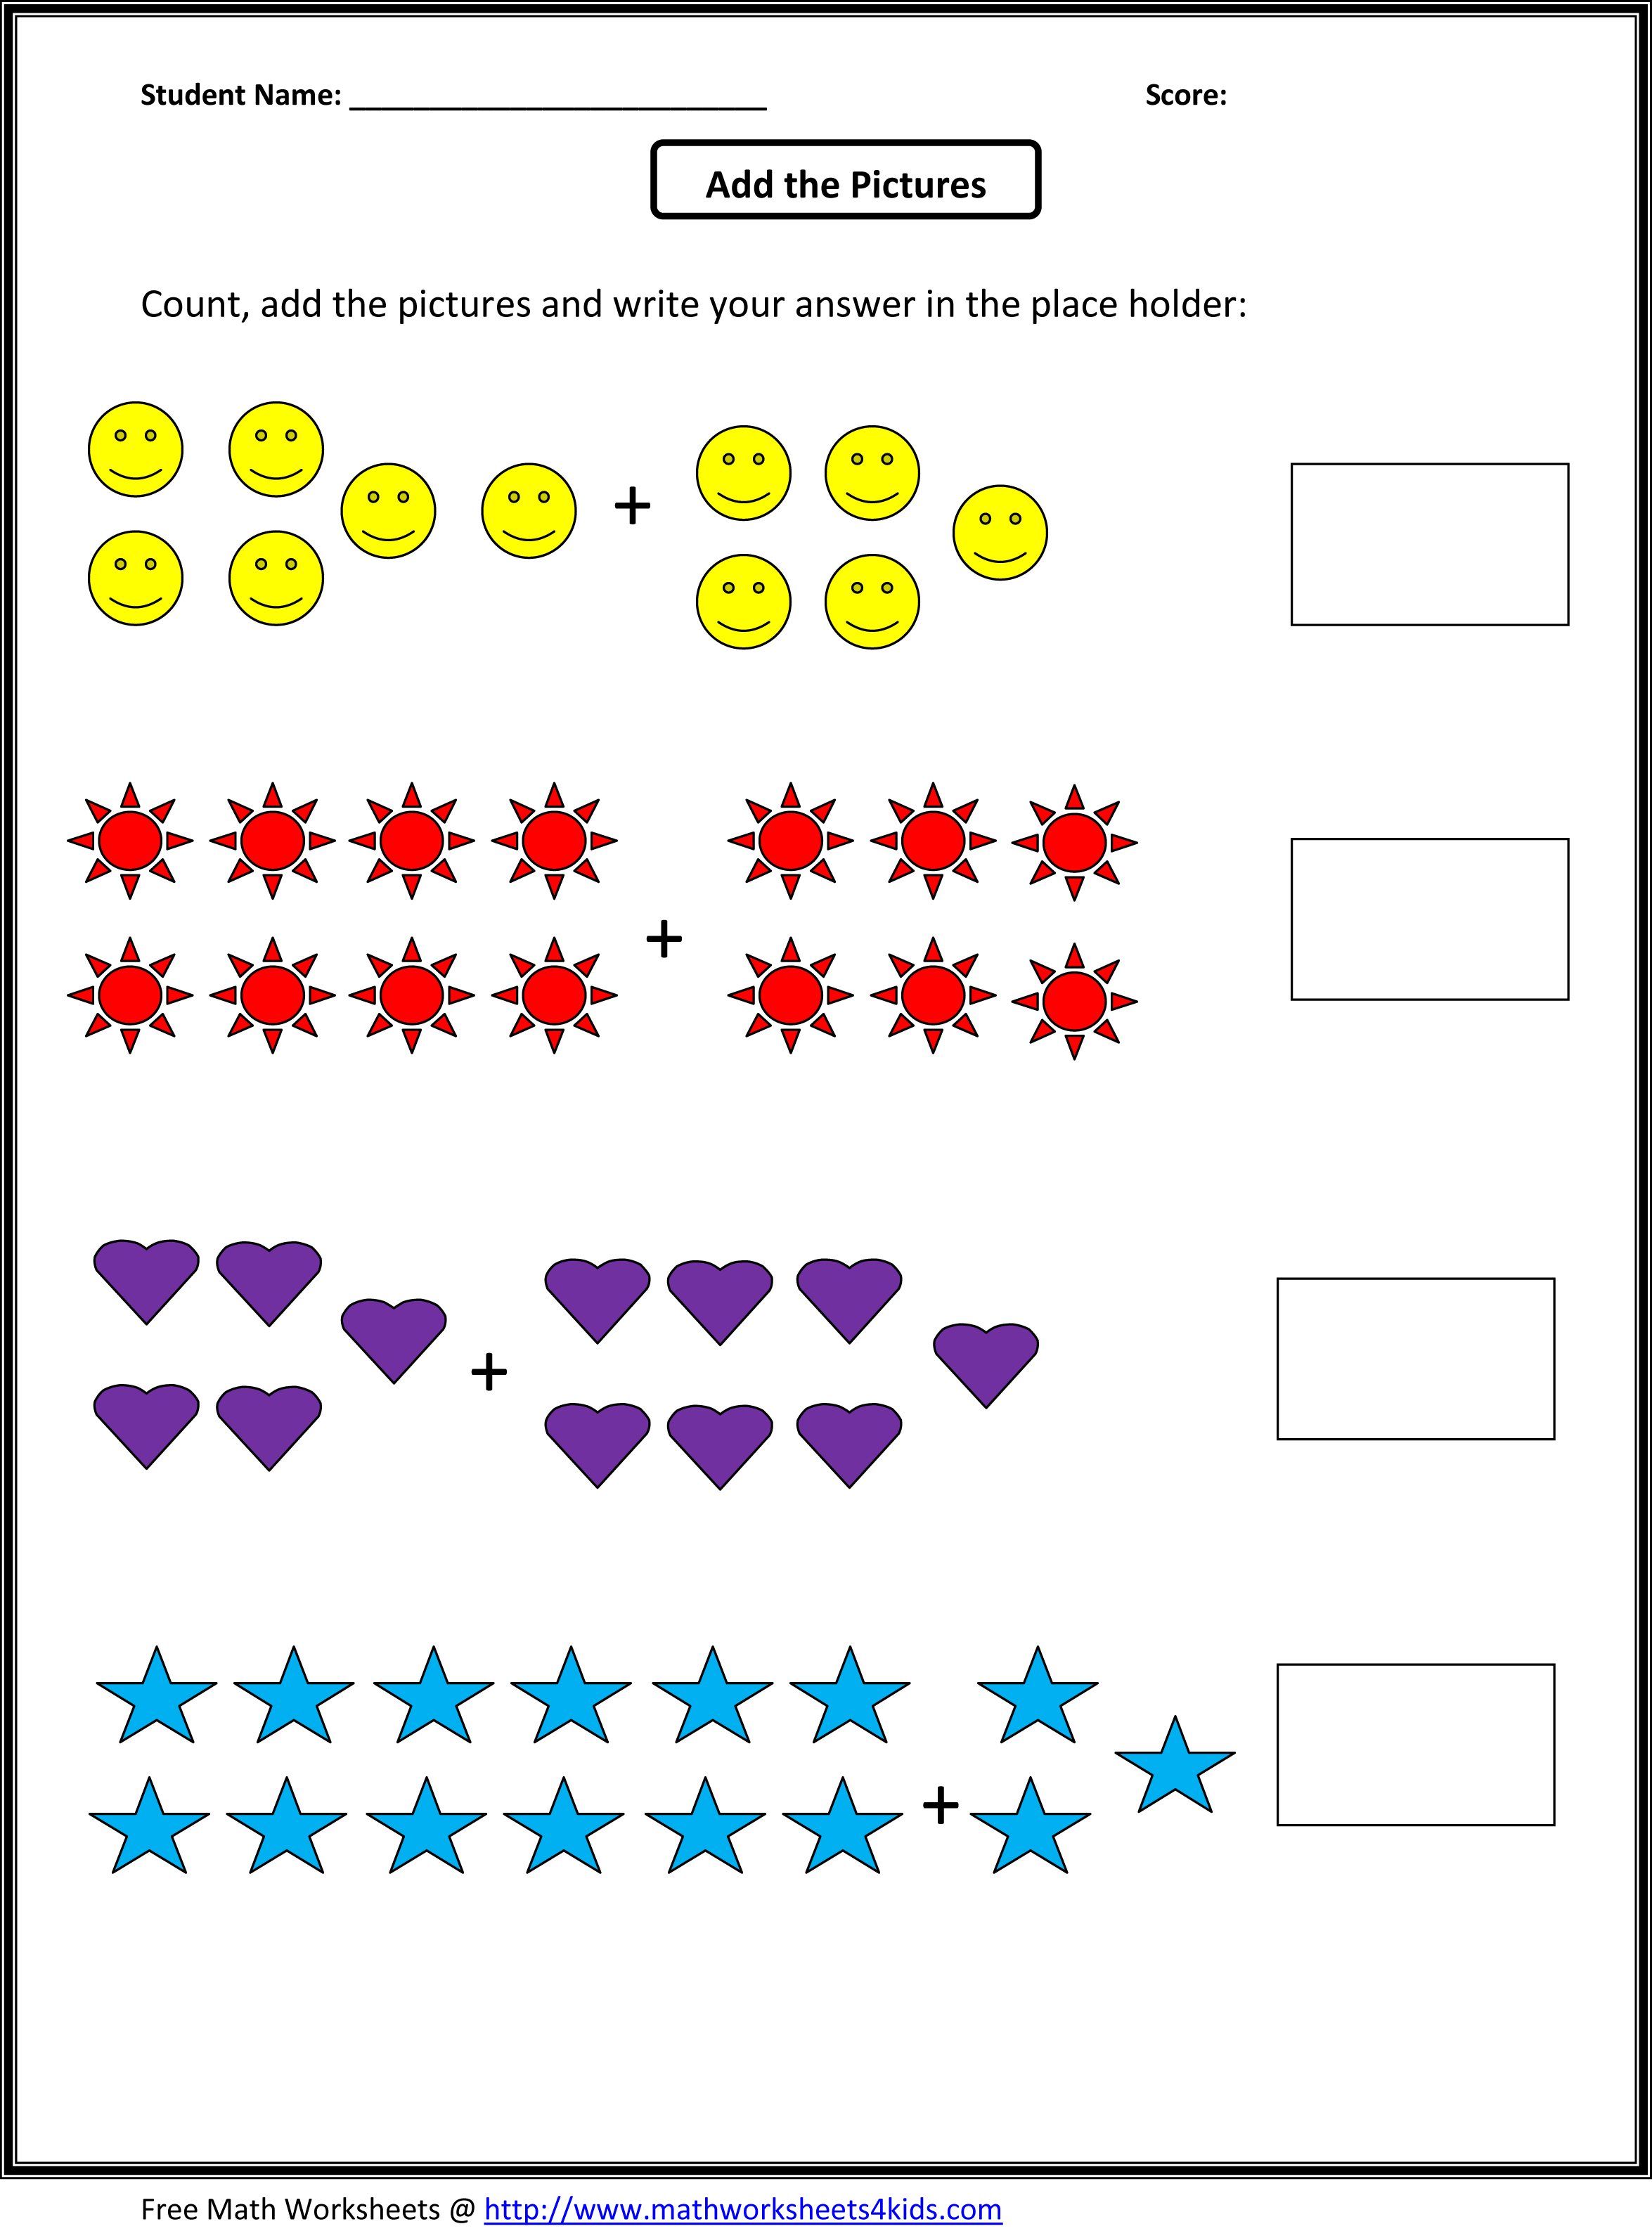 Proatmealus  Mesmerizing Grade  Maths Worksheet  Reocurent With Gorgeous Math Worksheets For St Grade Free  Reocurent With Enchanting Class Ii Maths Worksheets Also Worksheets On Conflict Resolution In Addition Dividing Ratios Worksheet And Conflict Resolution Worksheets For Students As Well As The Maths Worksheet Site Additionally Arithmetic Series Worksheets From Reocurentcom With Proatmealus  Gorgeous Grade  Maths Worksheet  Reocurent With Enchanting Math Worksheets For St Grade Free  Reocurent And Mesmerizing Class Ii Maths Worksheets Also Worksheets On Conflict Resolution In Addition Dividing Ratios Worksheet From Reocurentcom